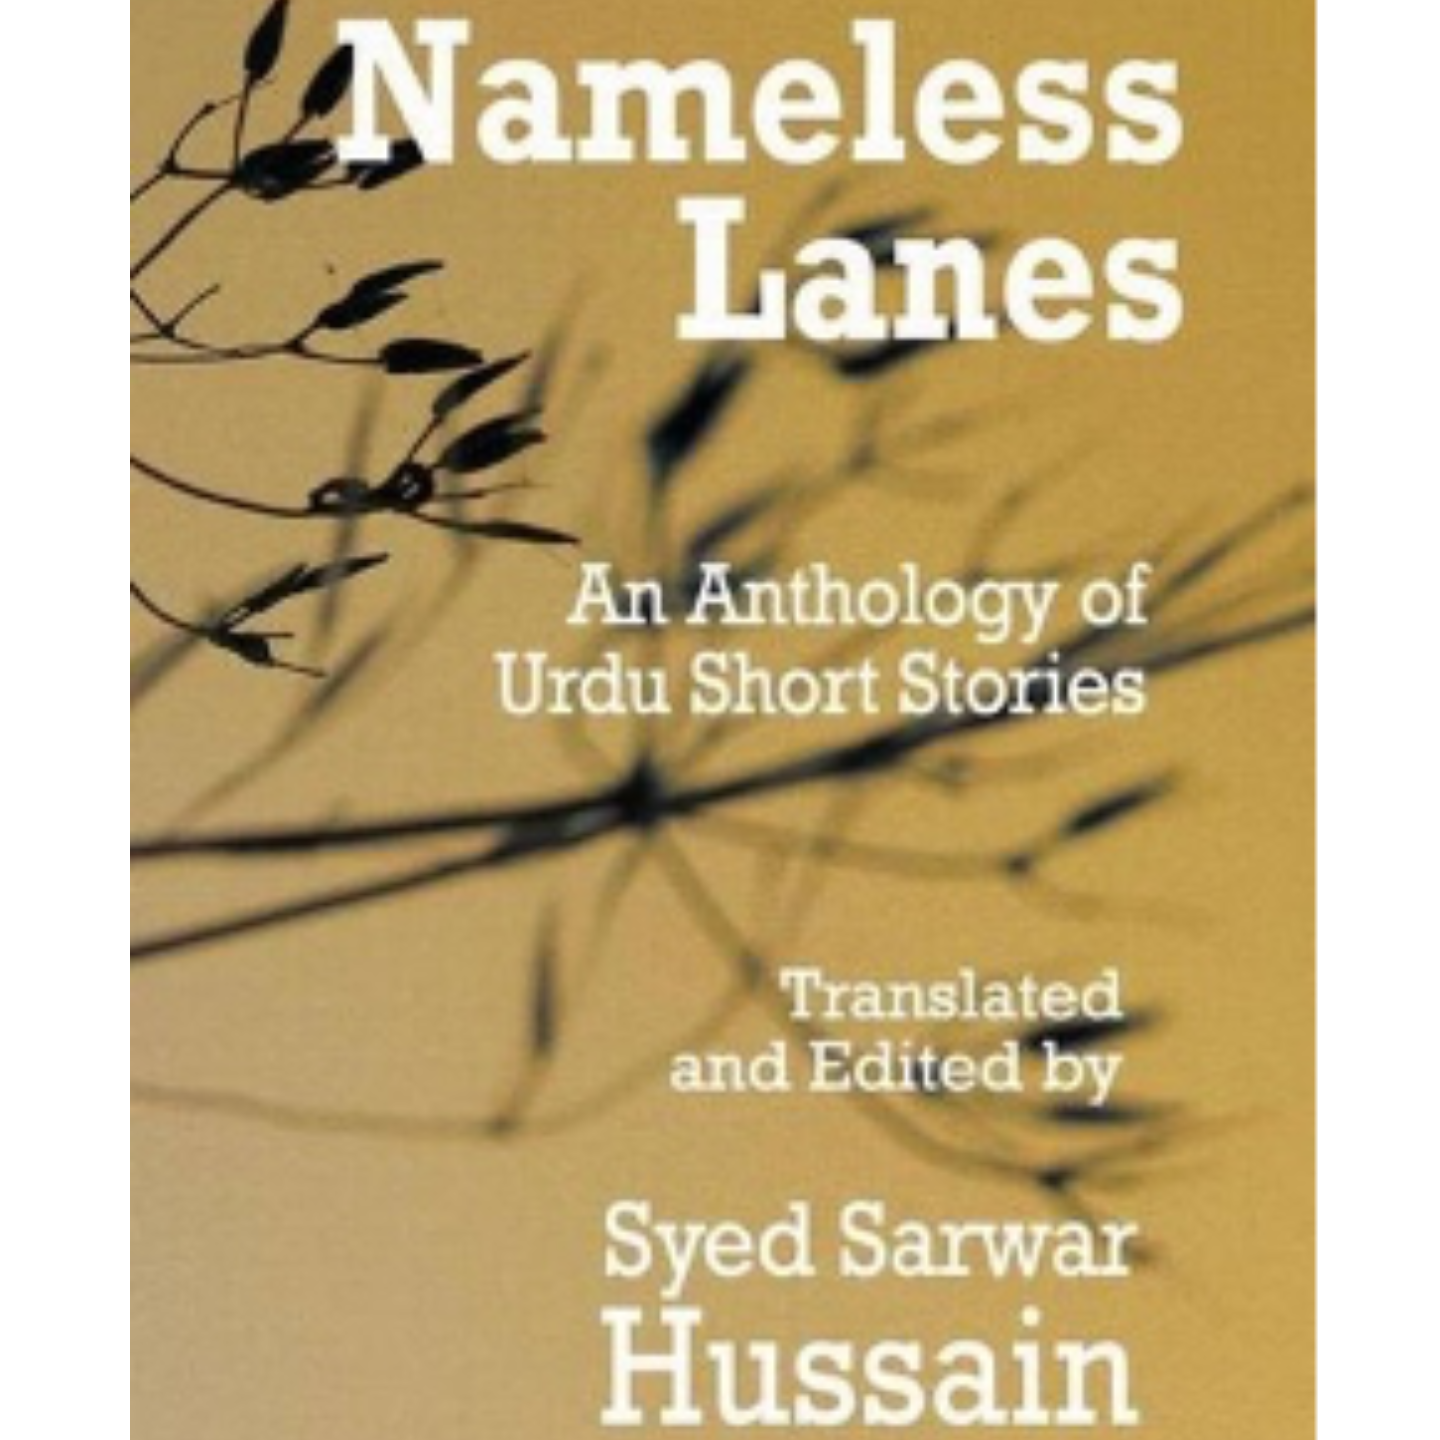 Nameless Lanes by Syed Sarwar Hussain